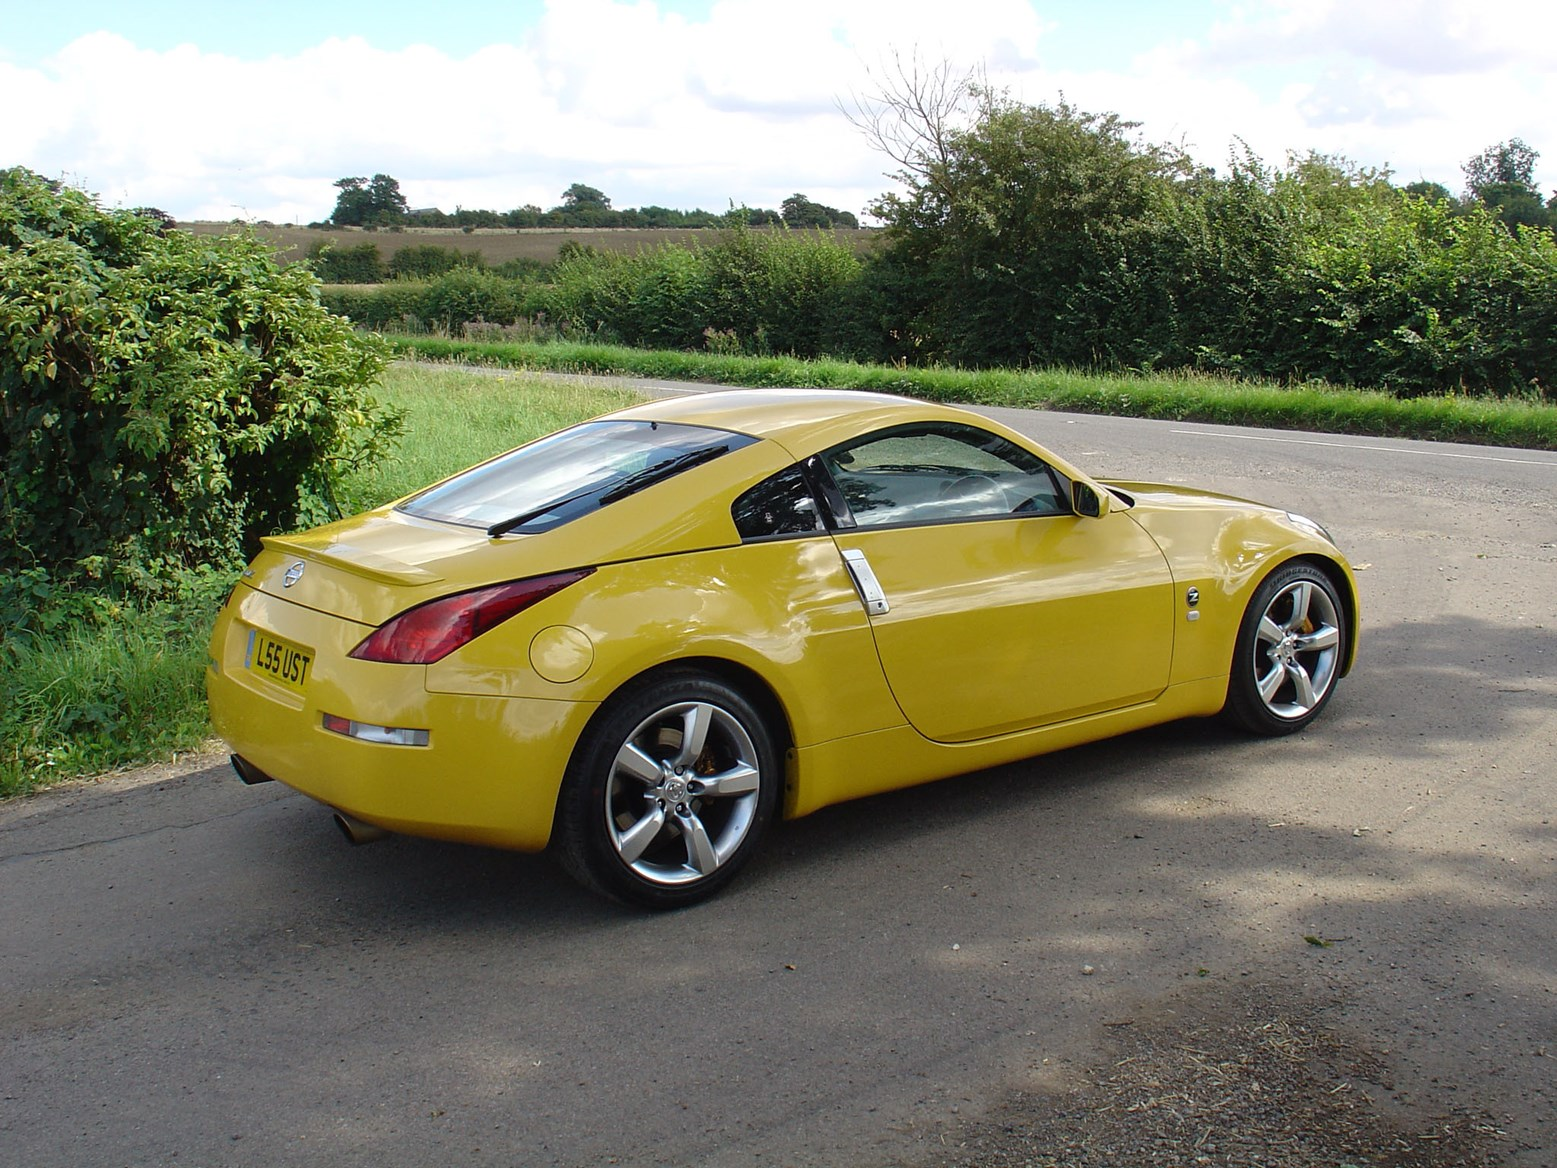 sale retford furious price grey fairlady movie petrol coupe video and for used car nottinghamshire fast in nissan